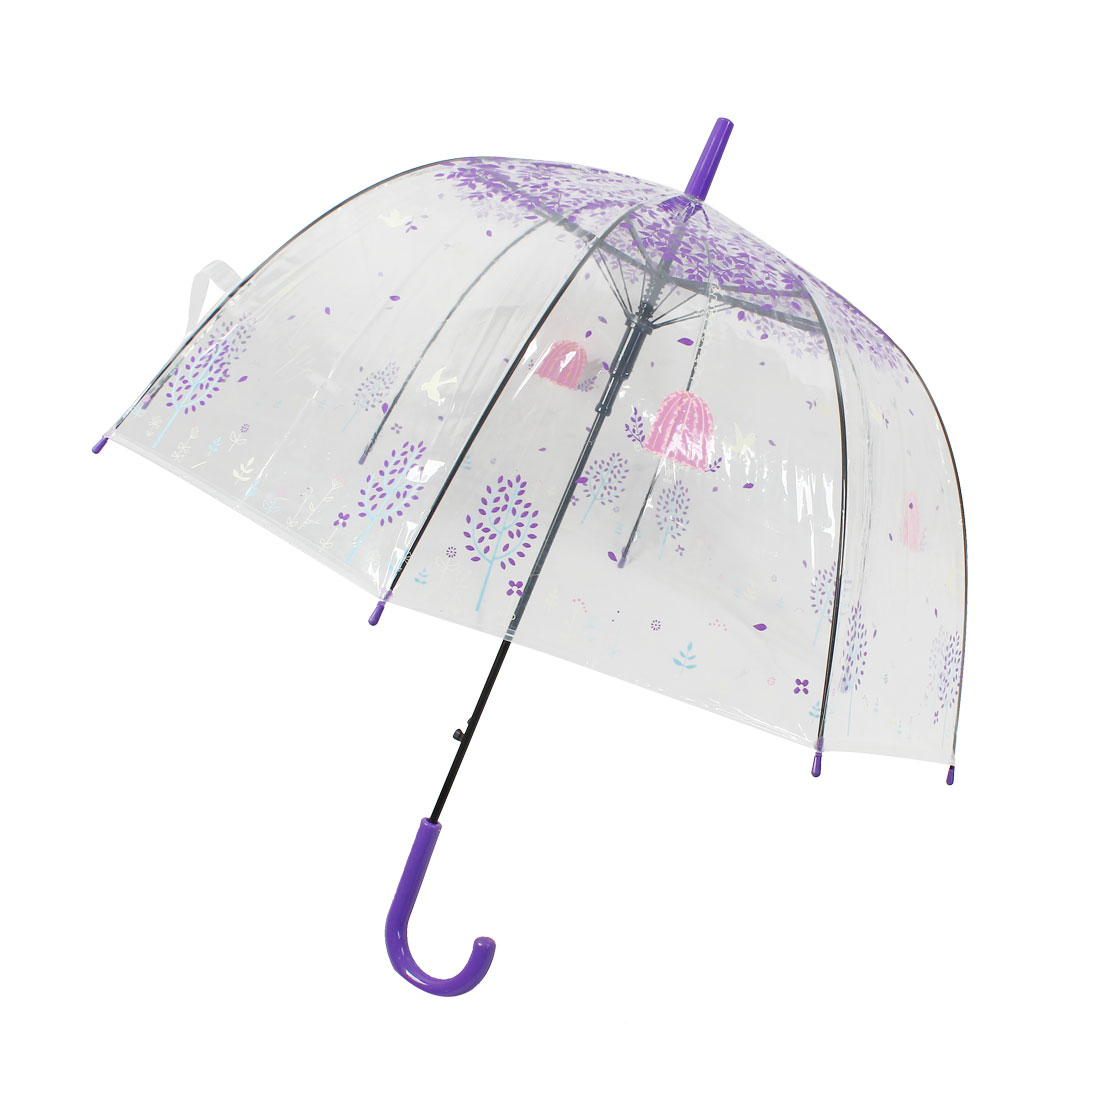 Hooked Handle Bird Leaves Pattern Sun Rain Umbrella Purple Pink Clear